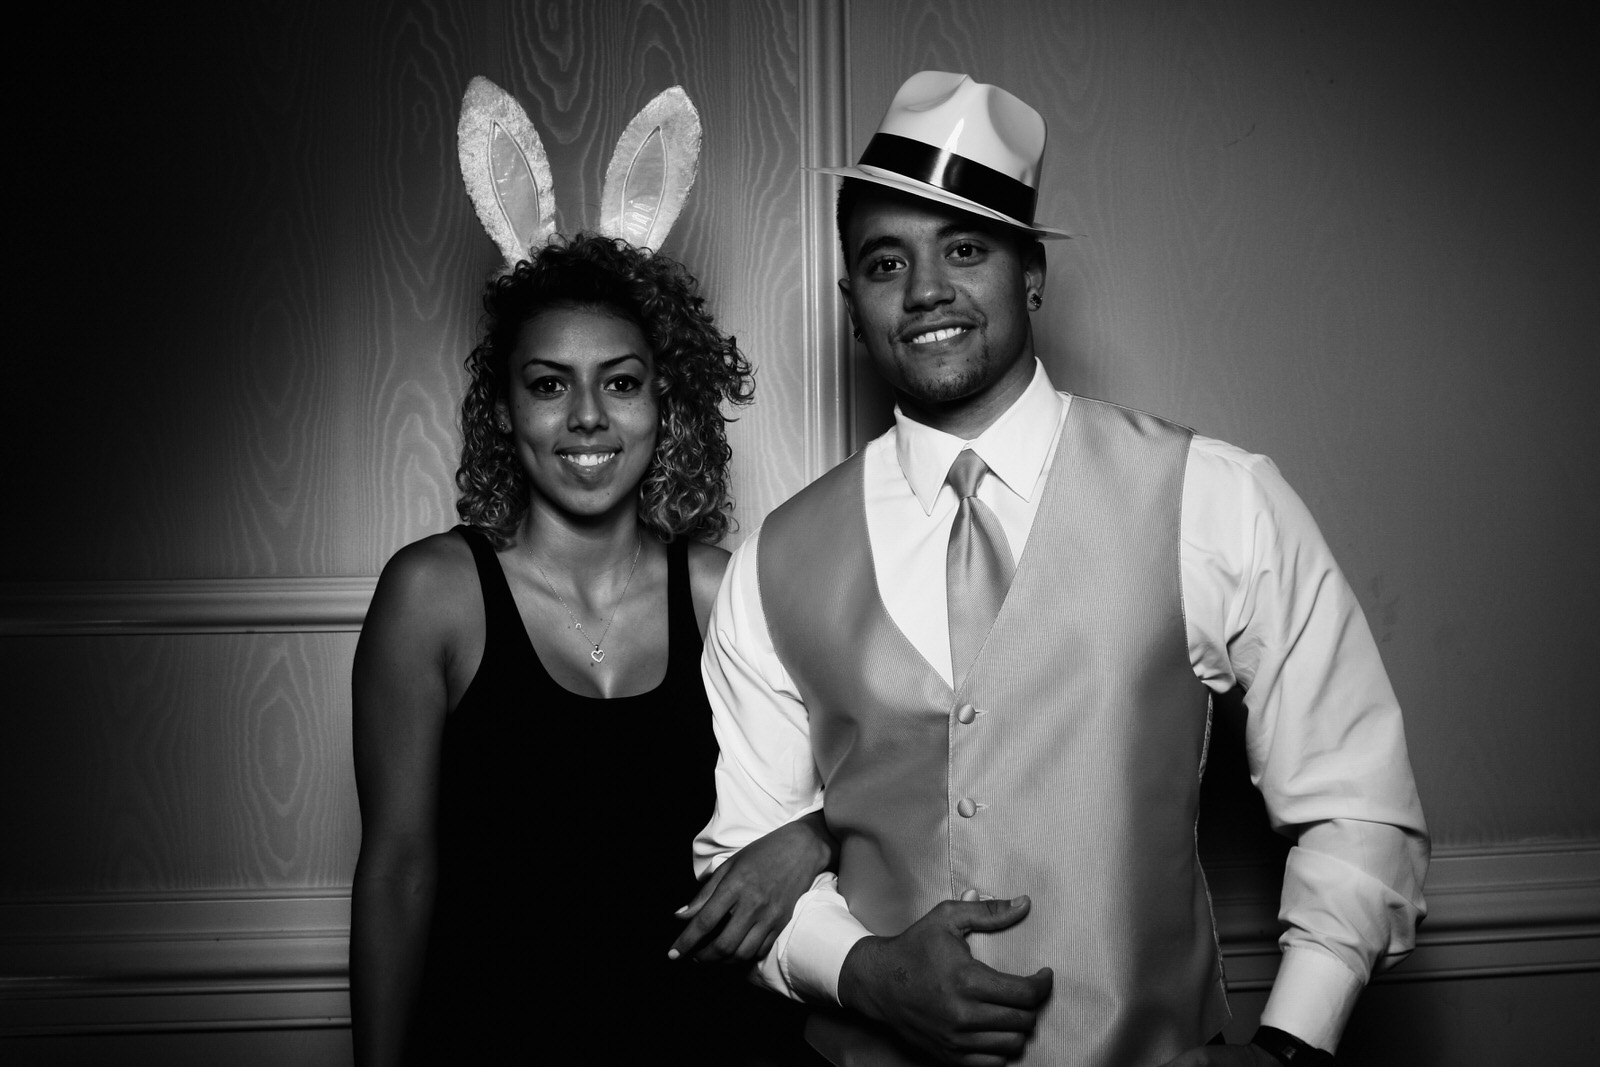 Ashley-Tyrone-Wedding-Photo-Booth-Presidential_Norristown-Wedding-6.jpg